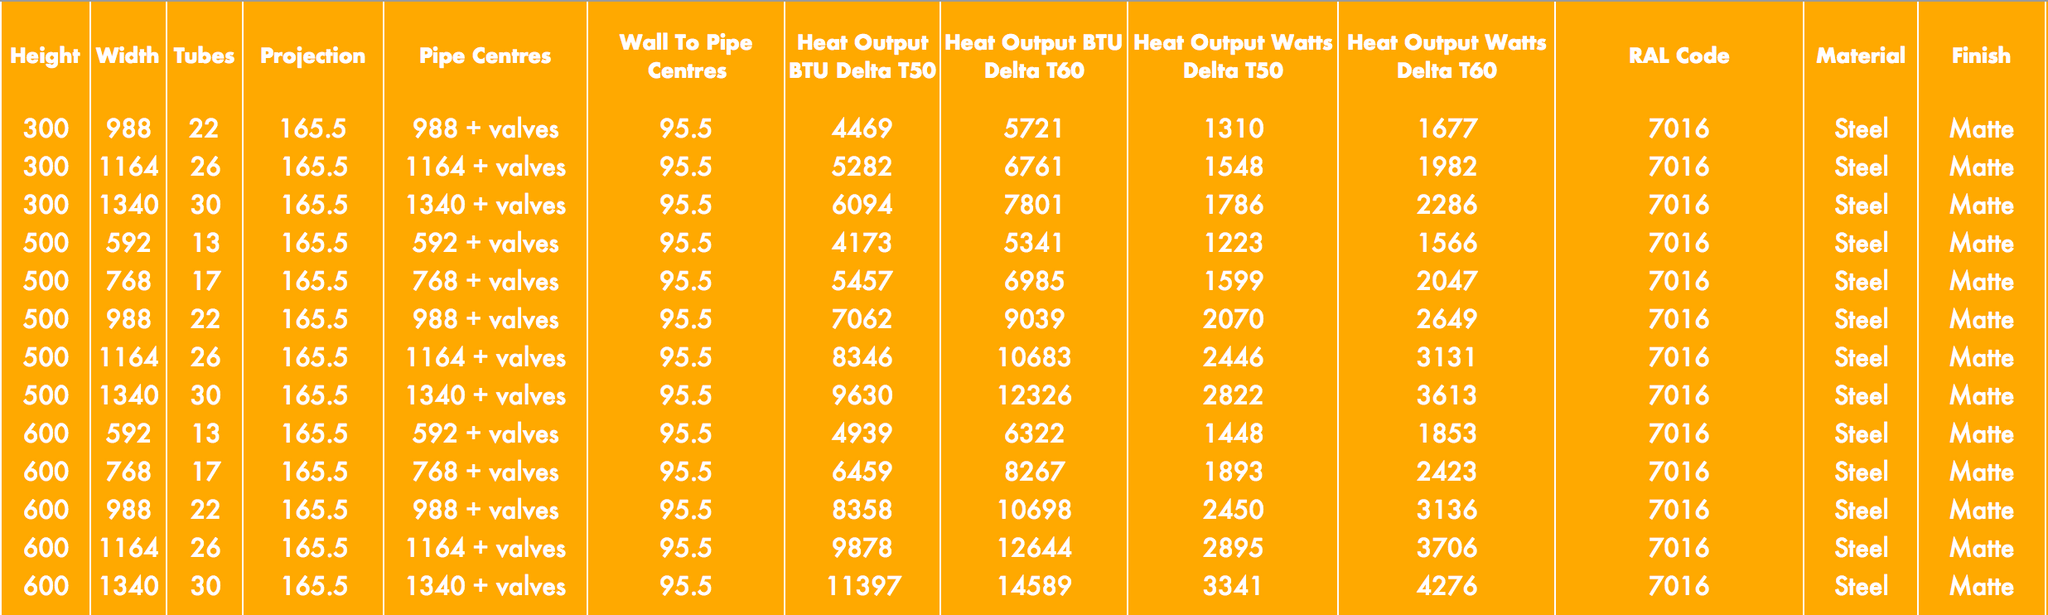 4 column radiator heat outputs